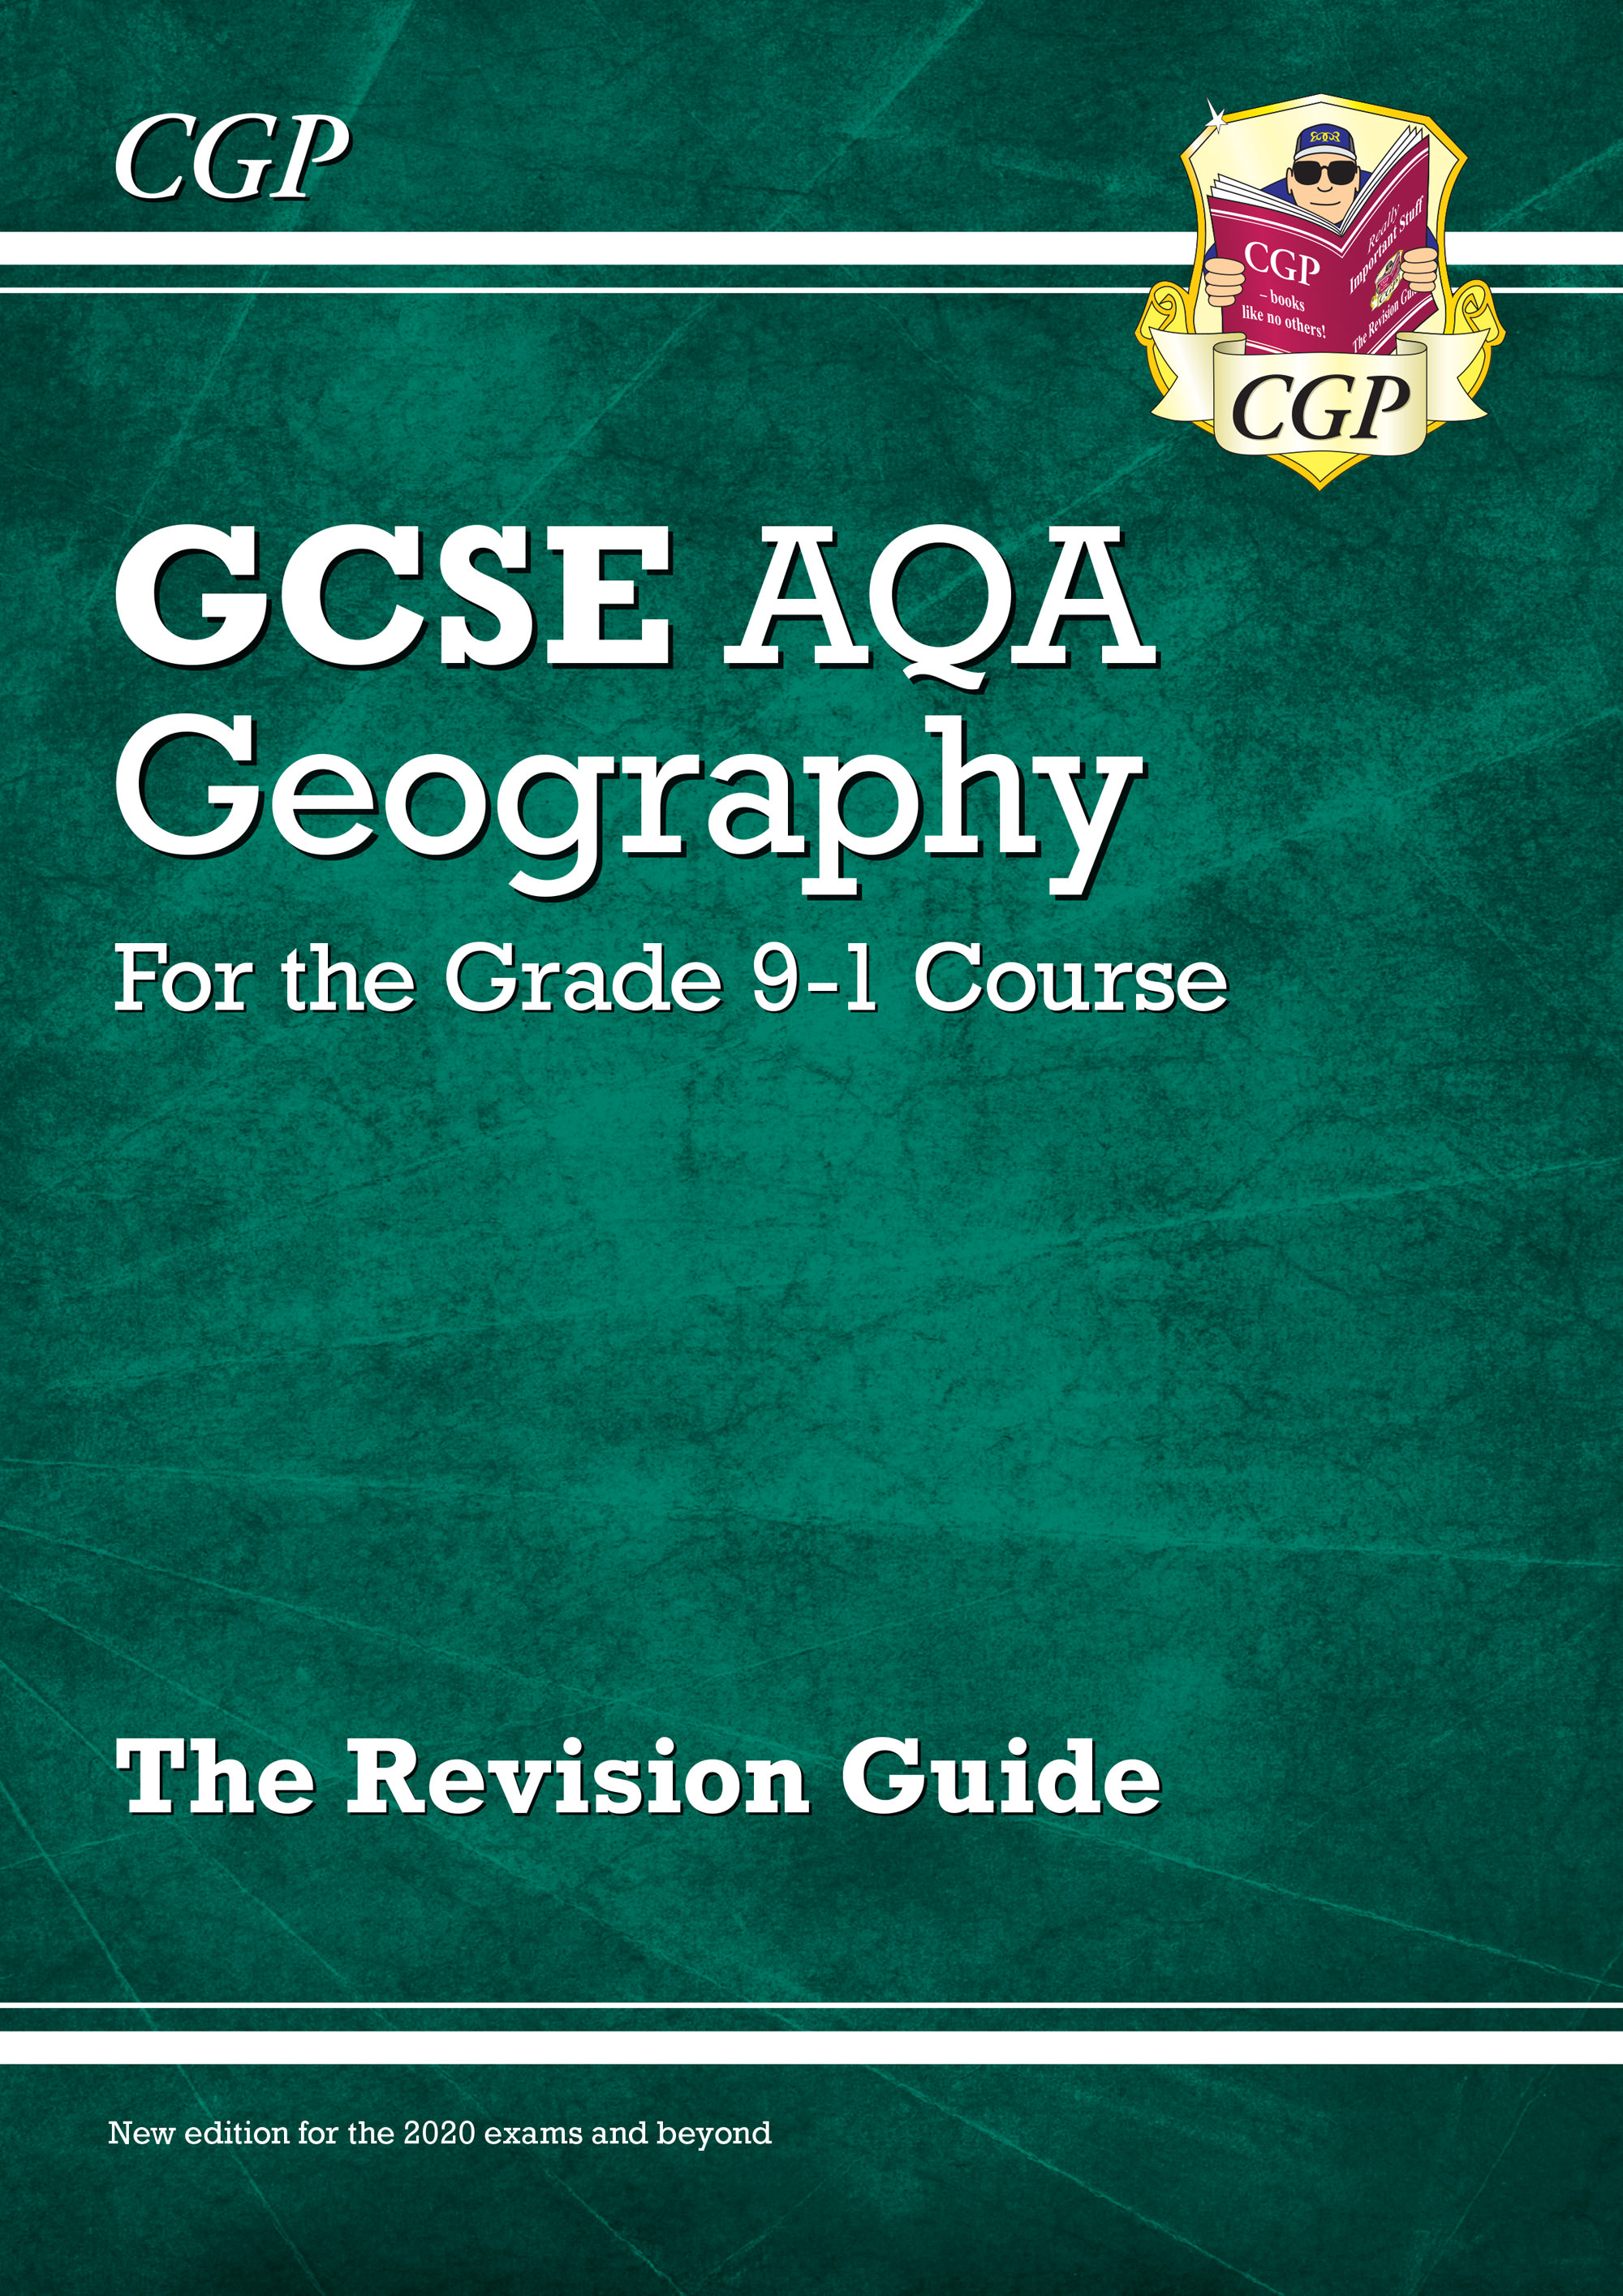 GAR45D - New GCSE 9-1 Geography AQA Revision Guide - New Edition for 2020 exams & beyond (Online Edi